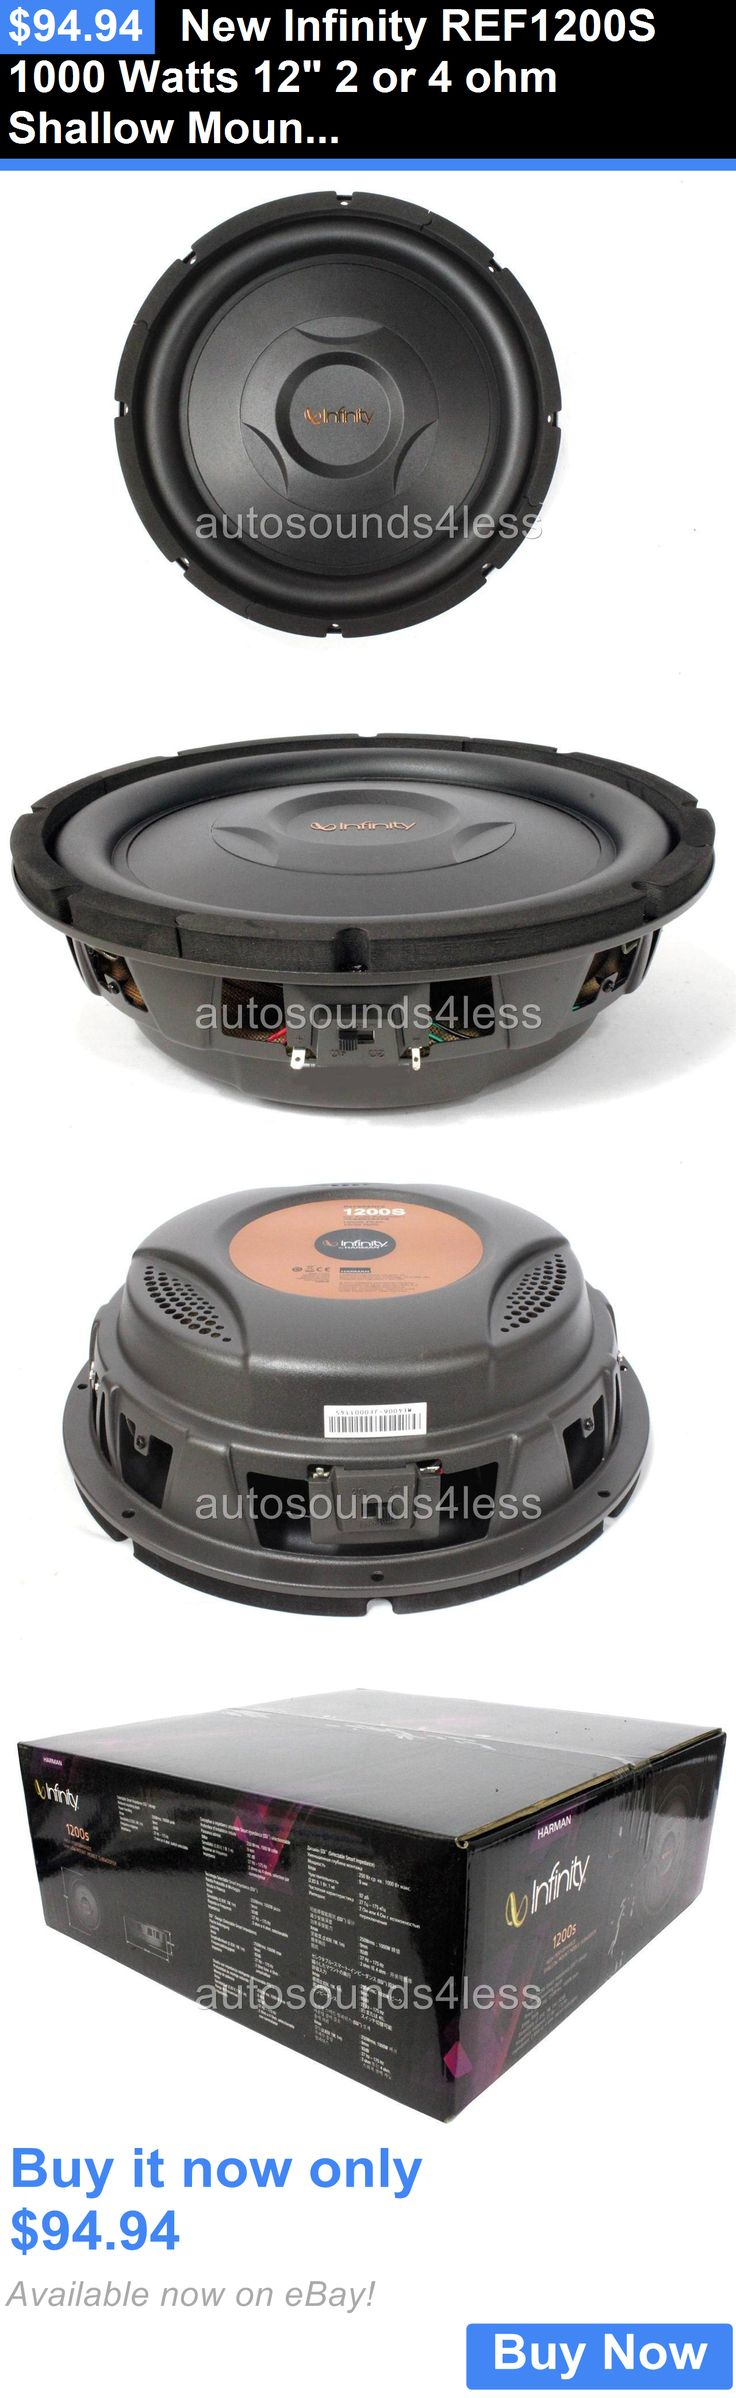 Car Subwoofers: New Infinity Ref1200s 1000 Watts 12 2 Or 4 Ohm Shallow Mount Truck Subwoofer BUY IT NOW ONLY: $94.94